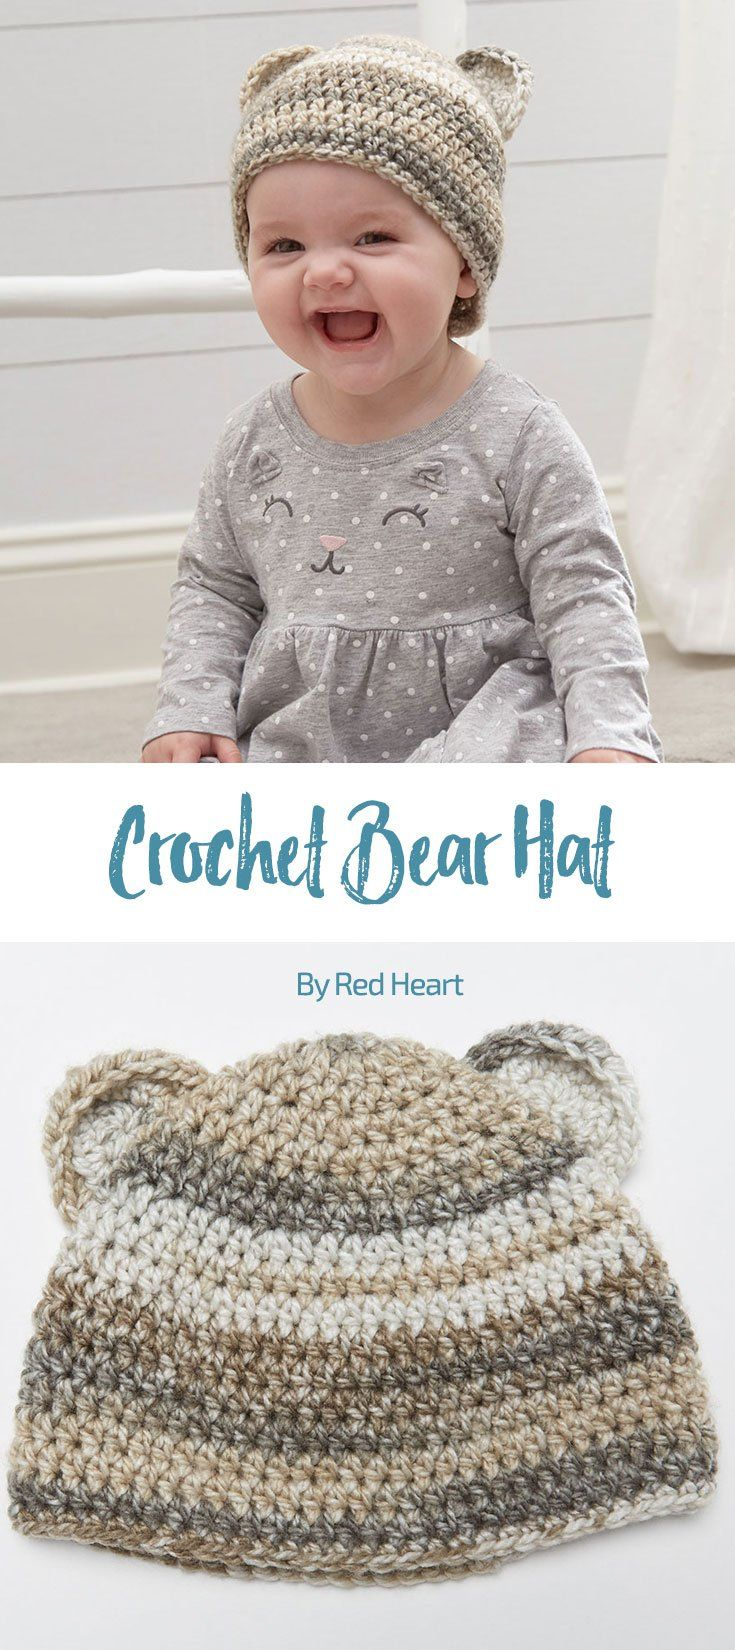 Crochet Bear Hat free crochet pattern in Hopscotch. | gorros ...